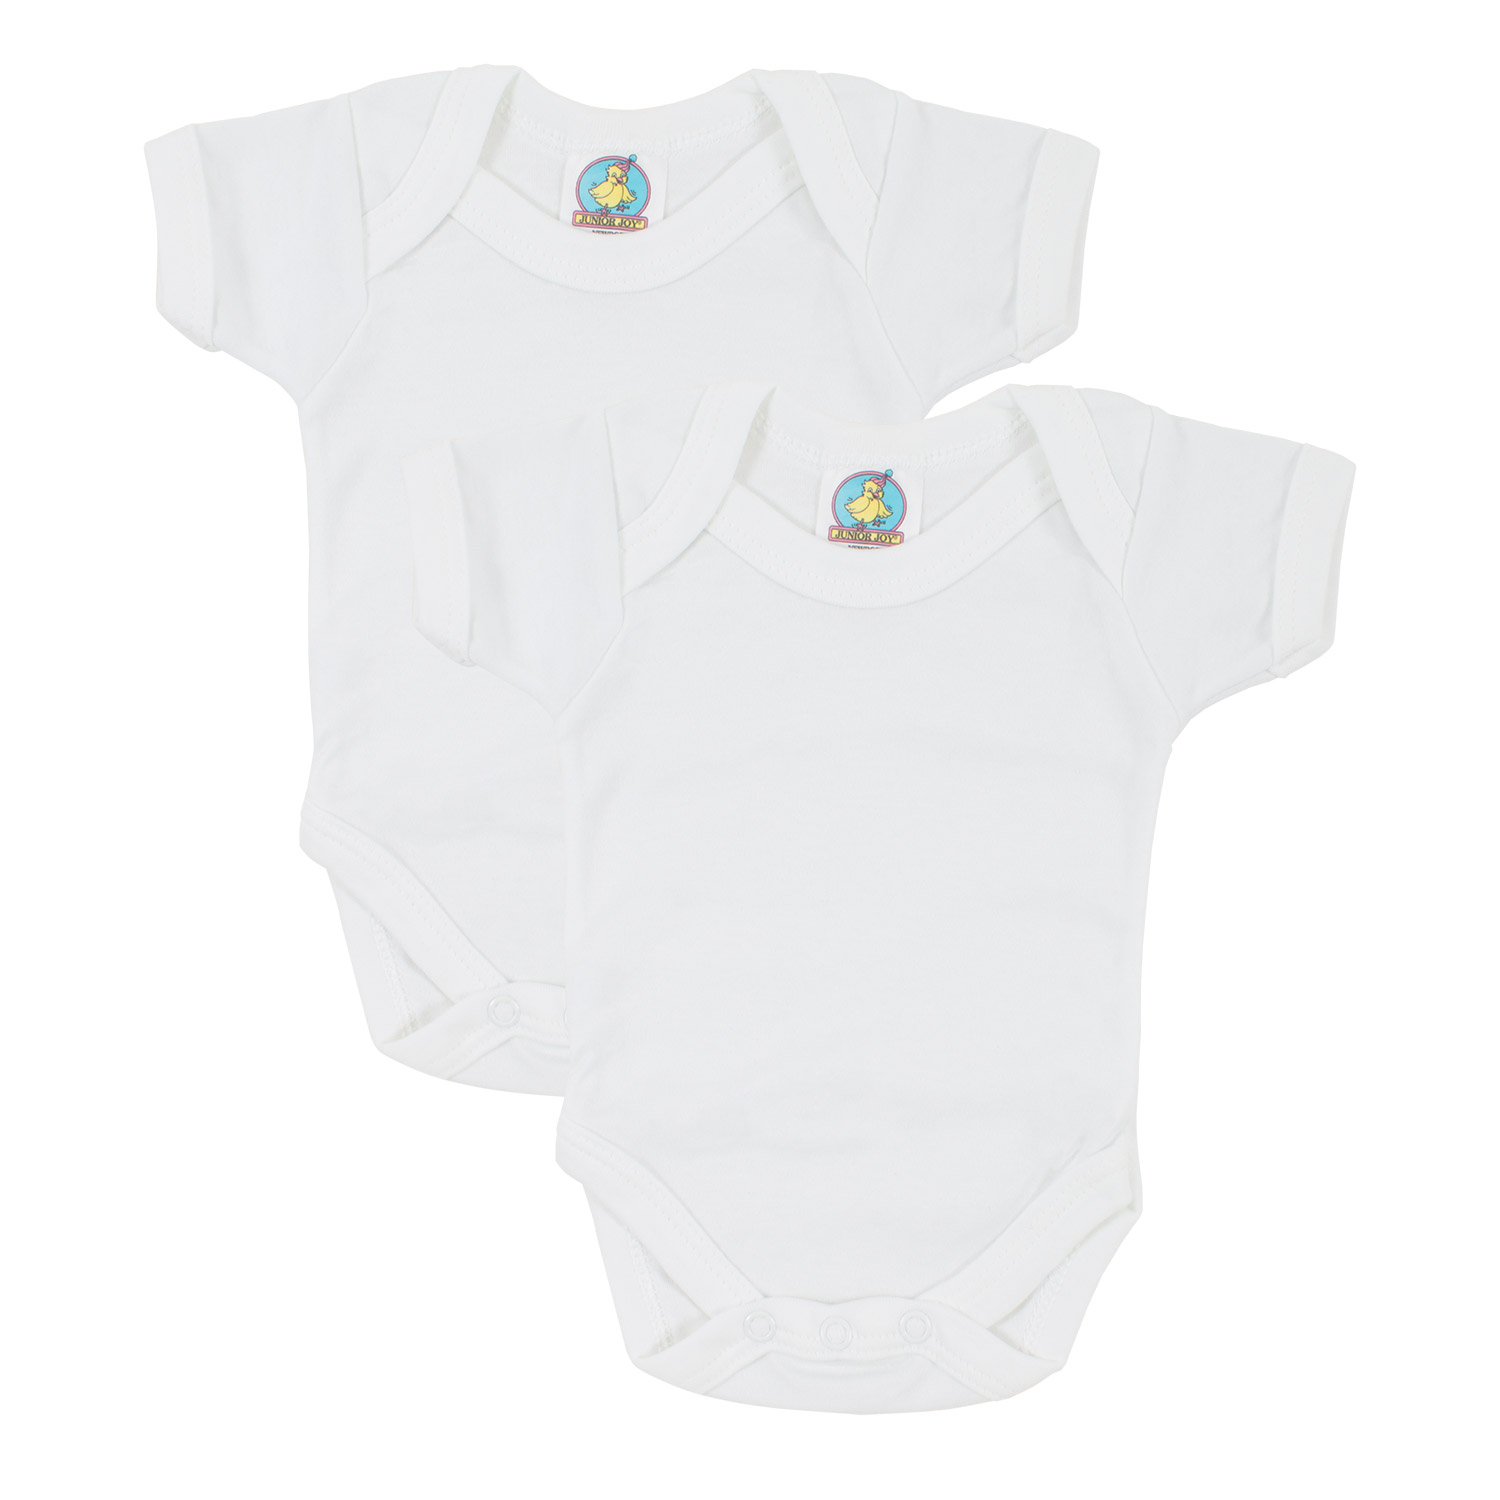 Junior Joy Short Sleeve Bodysuit - White